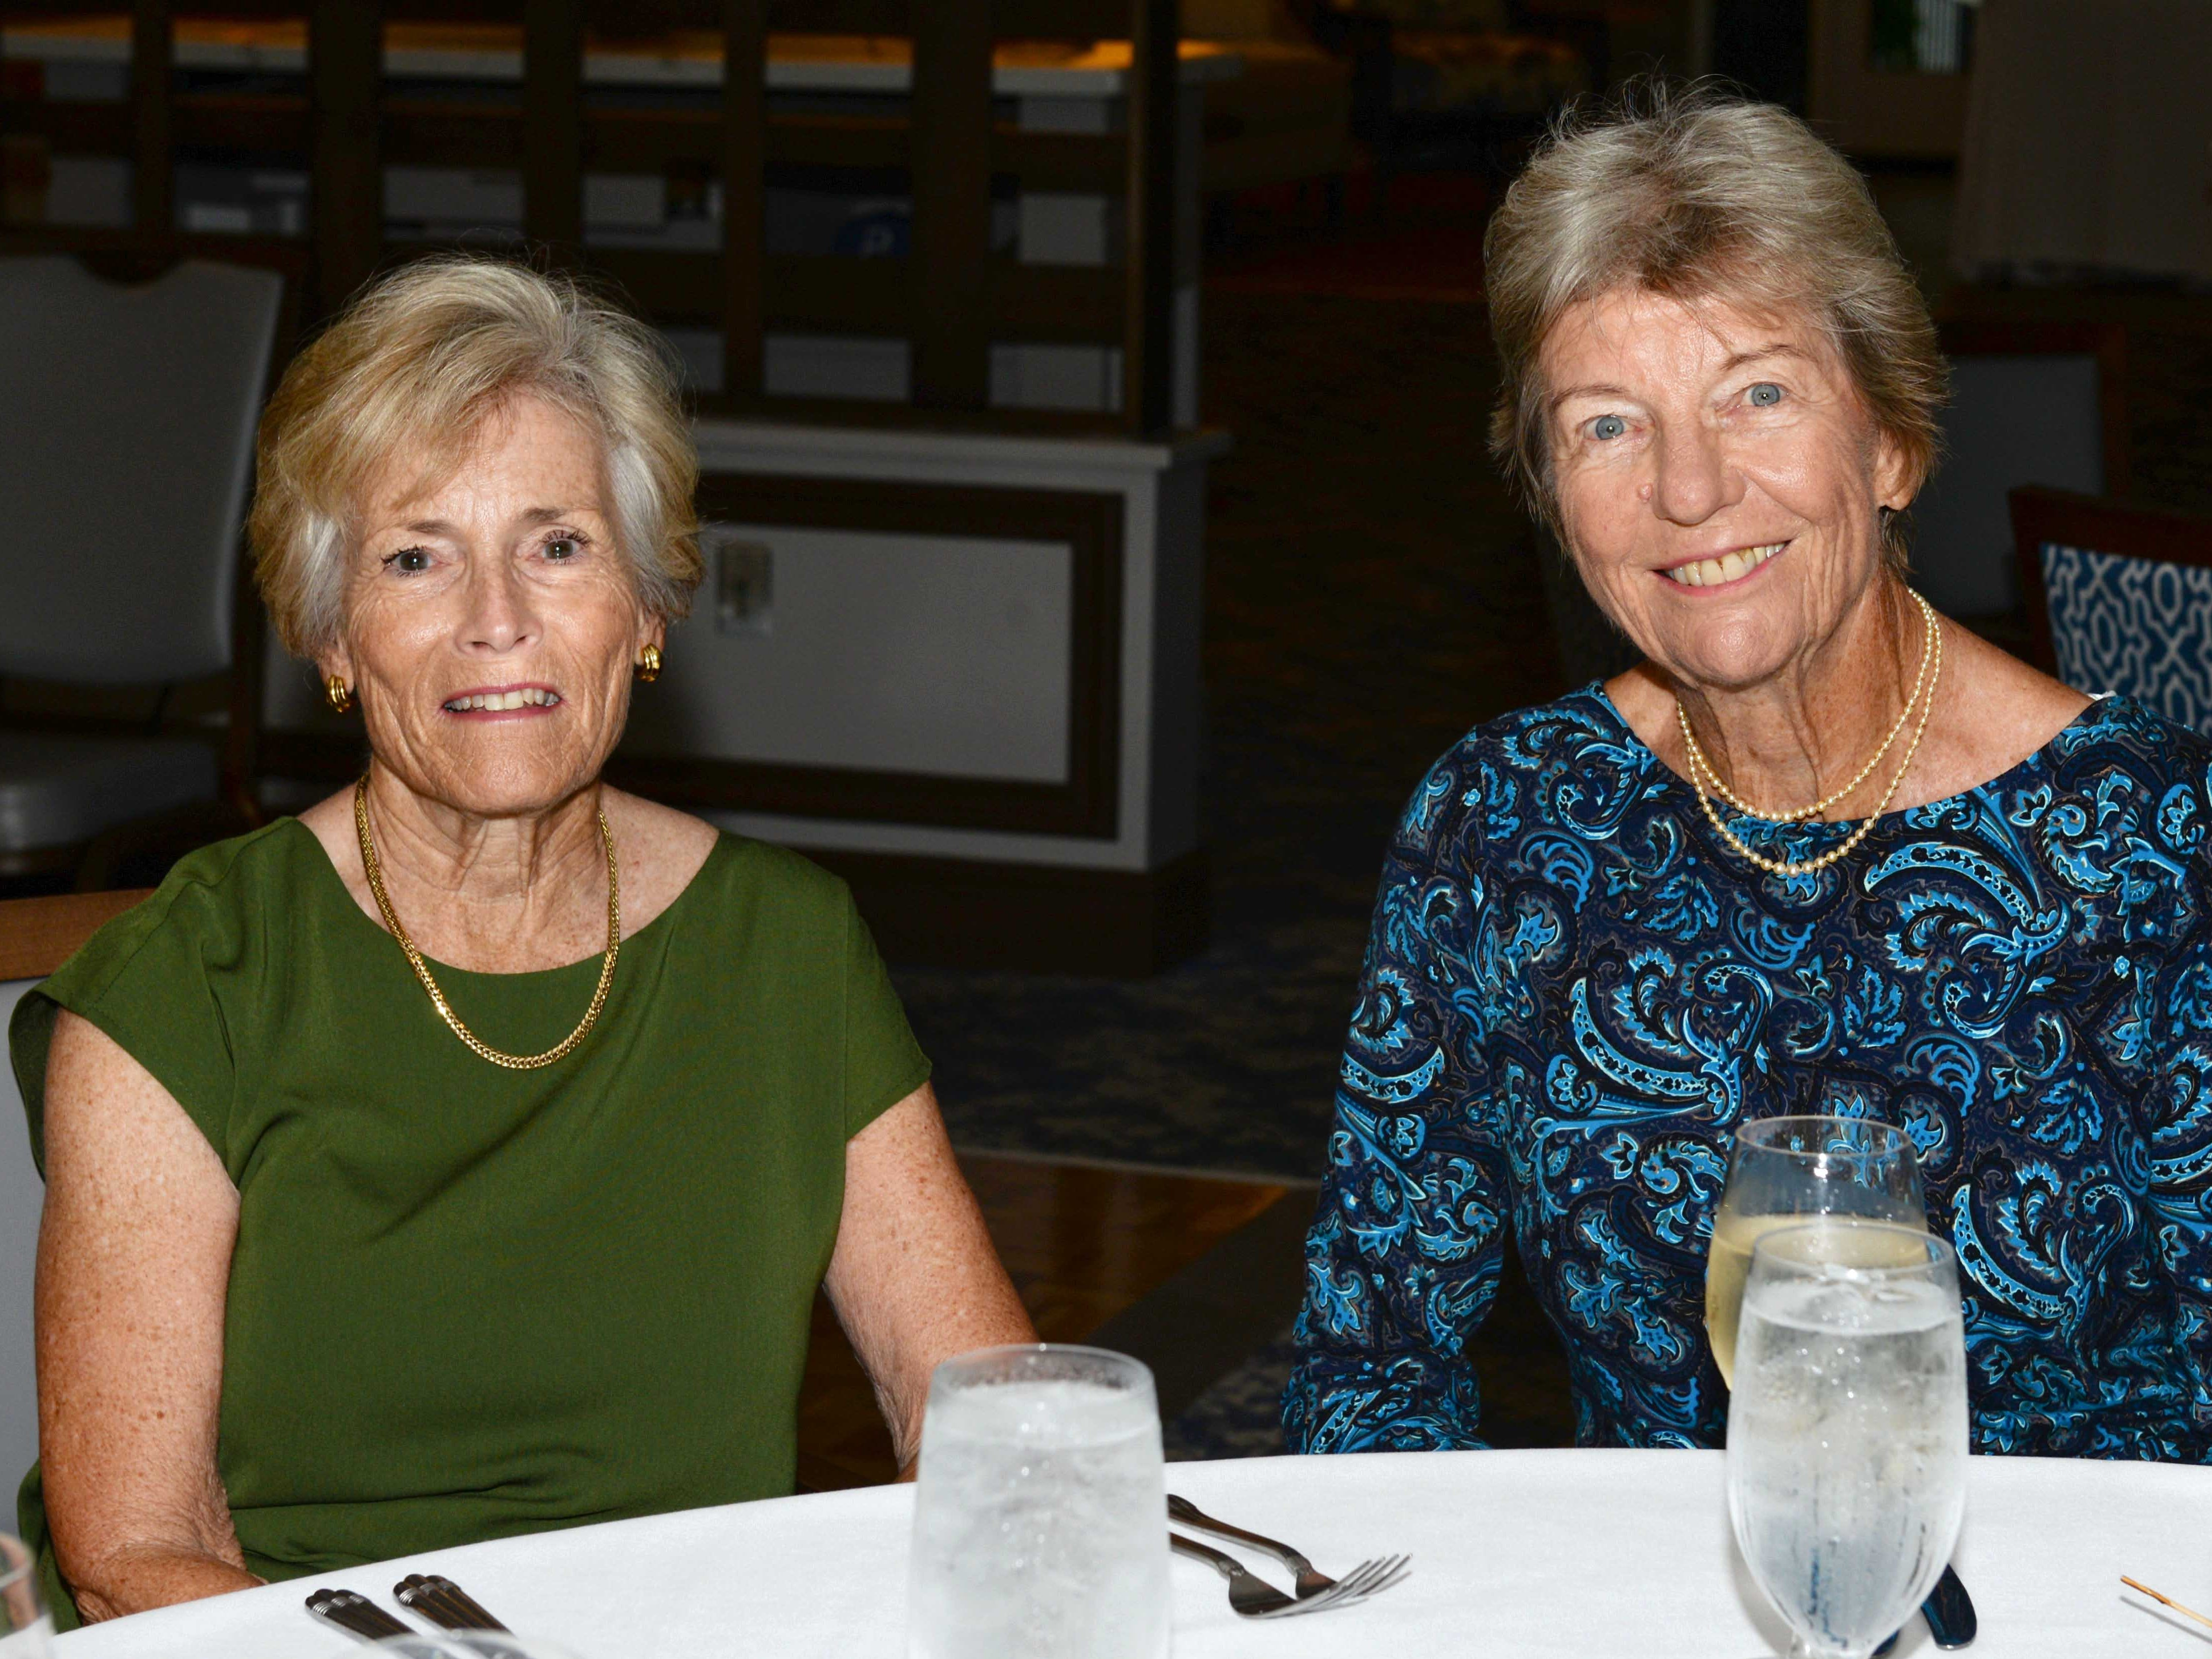 Isa Von Hessert, left, and Mary Moore at the Stuart Friends of the Atlantic Classical Orchestra's Meet the Artist Dinner at the Stuart Yacht & Country Club.